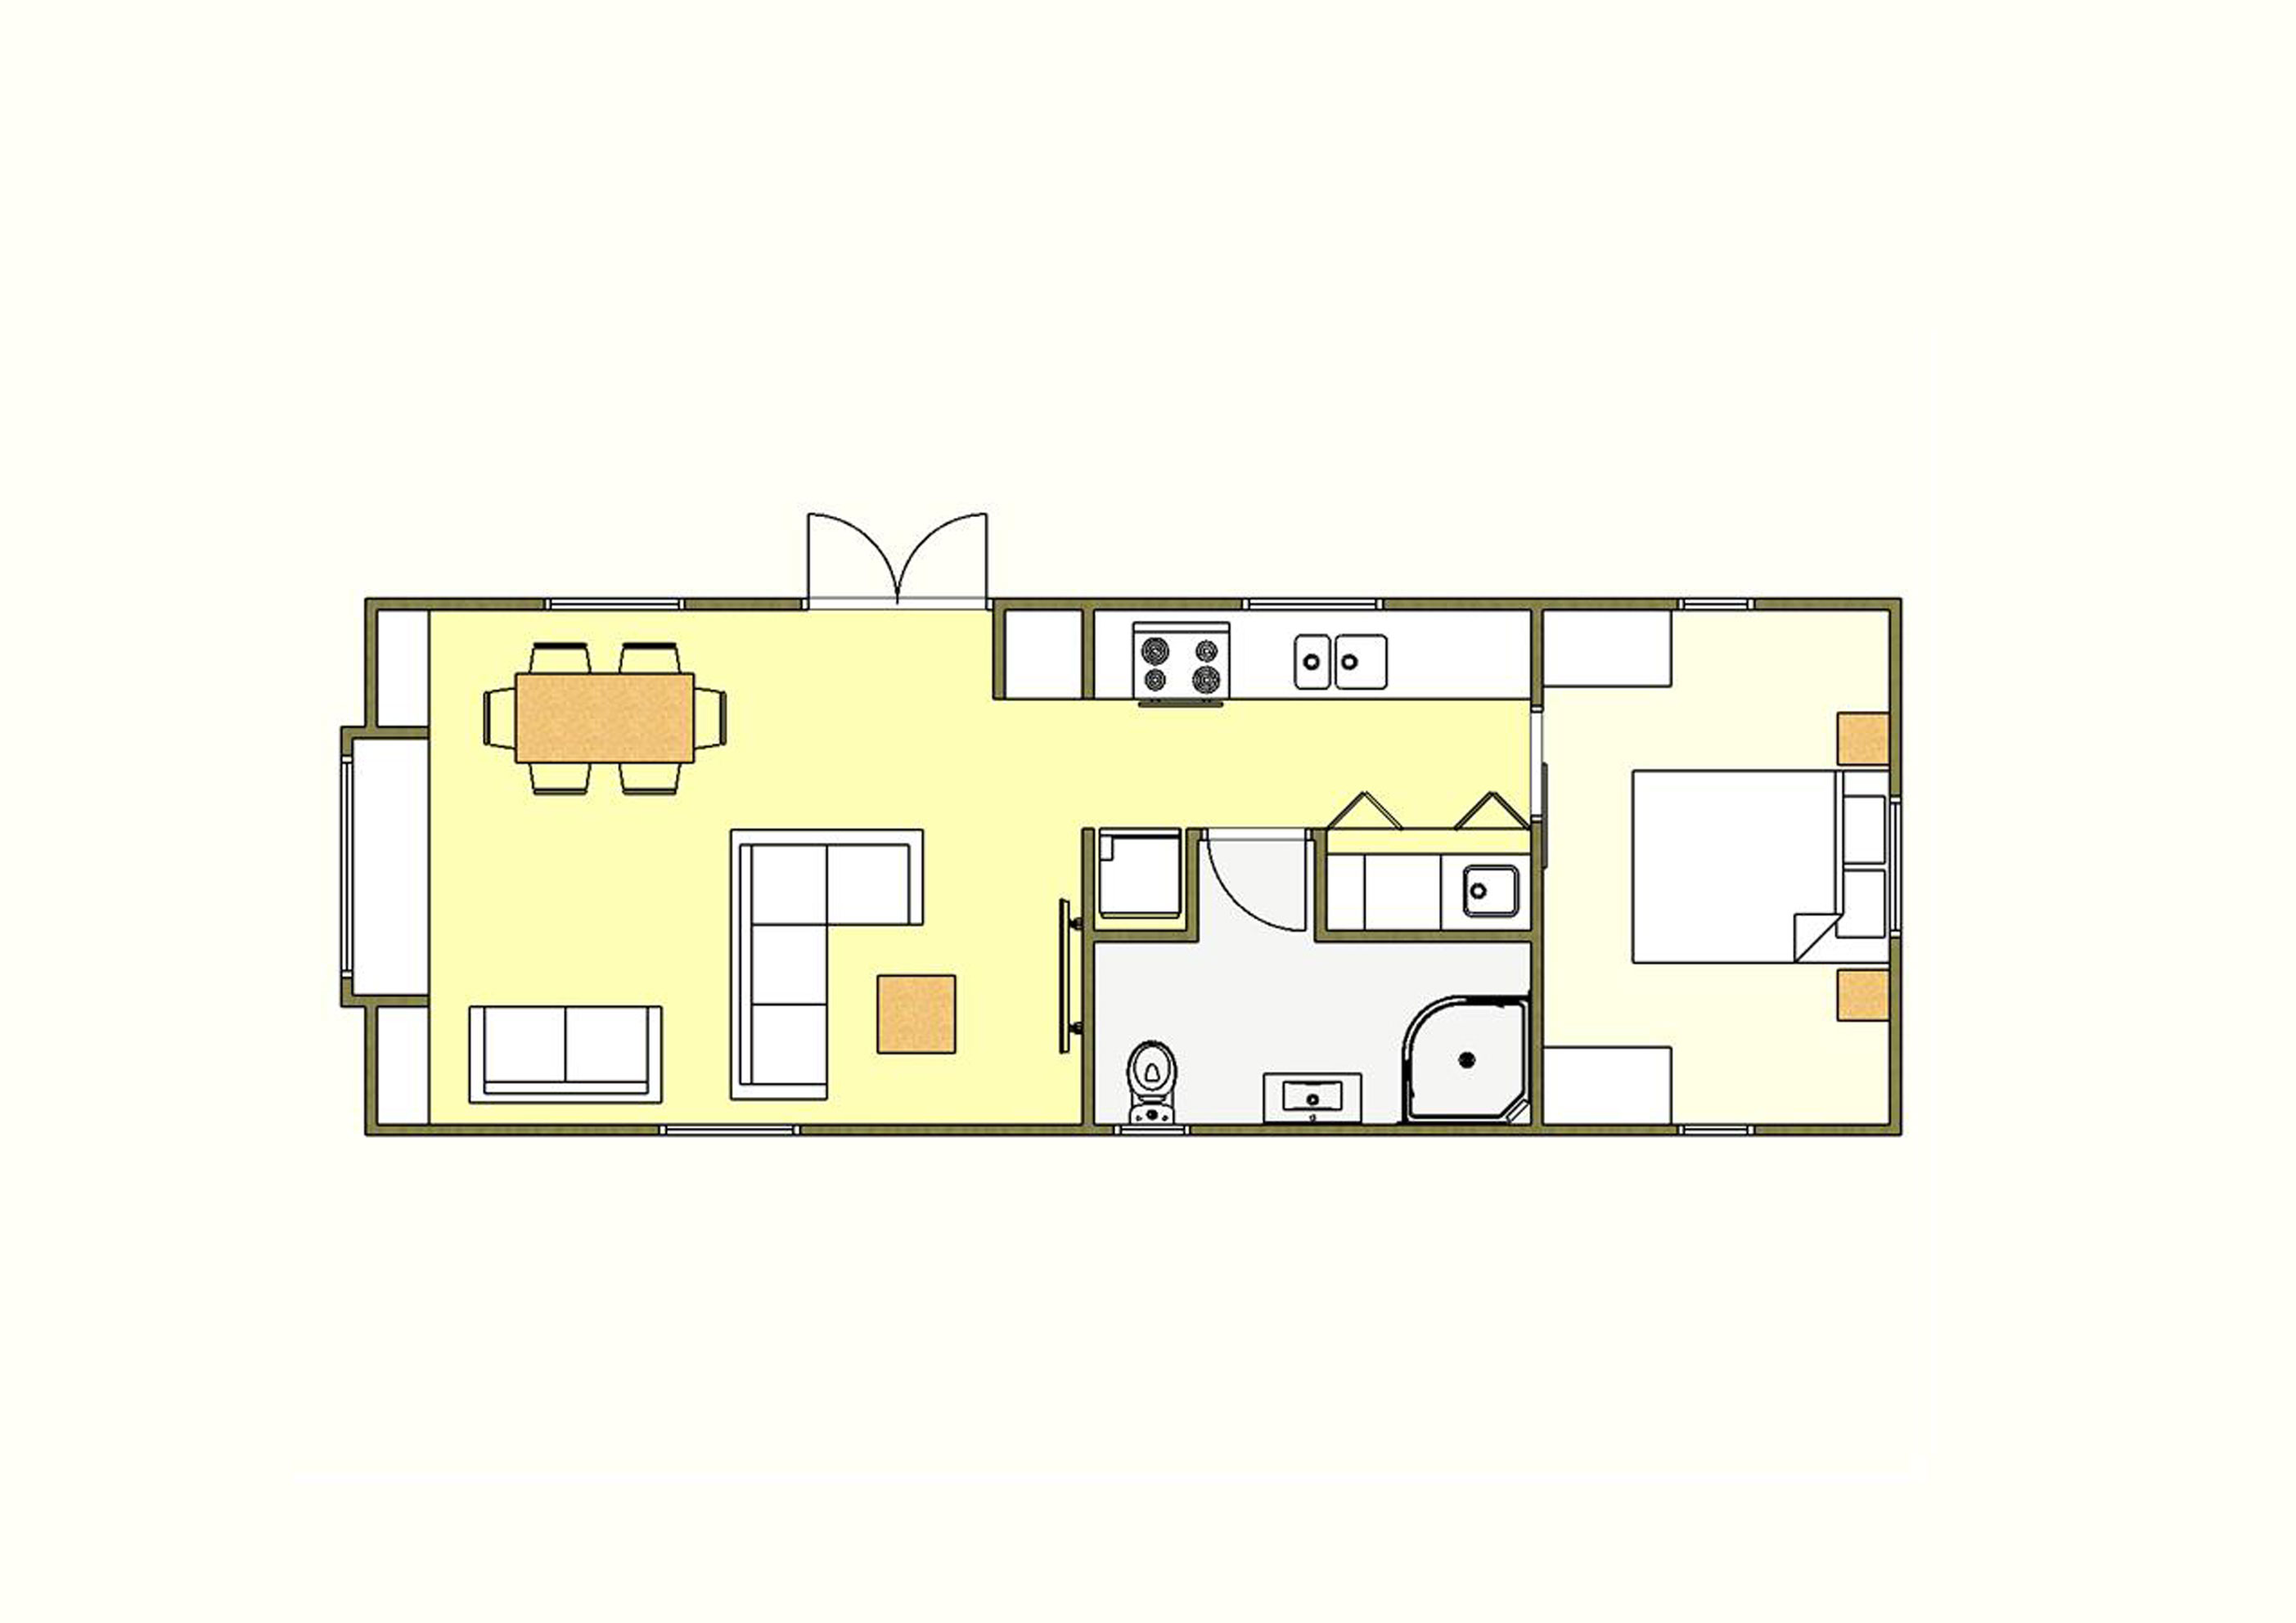 50 sqm Plan Four - 1 Bedroom